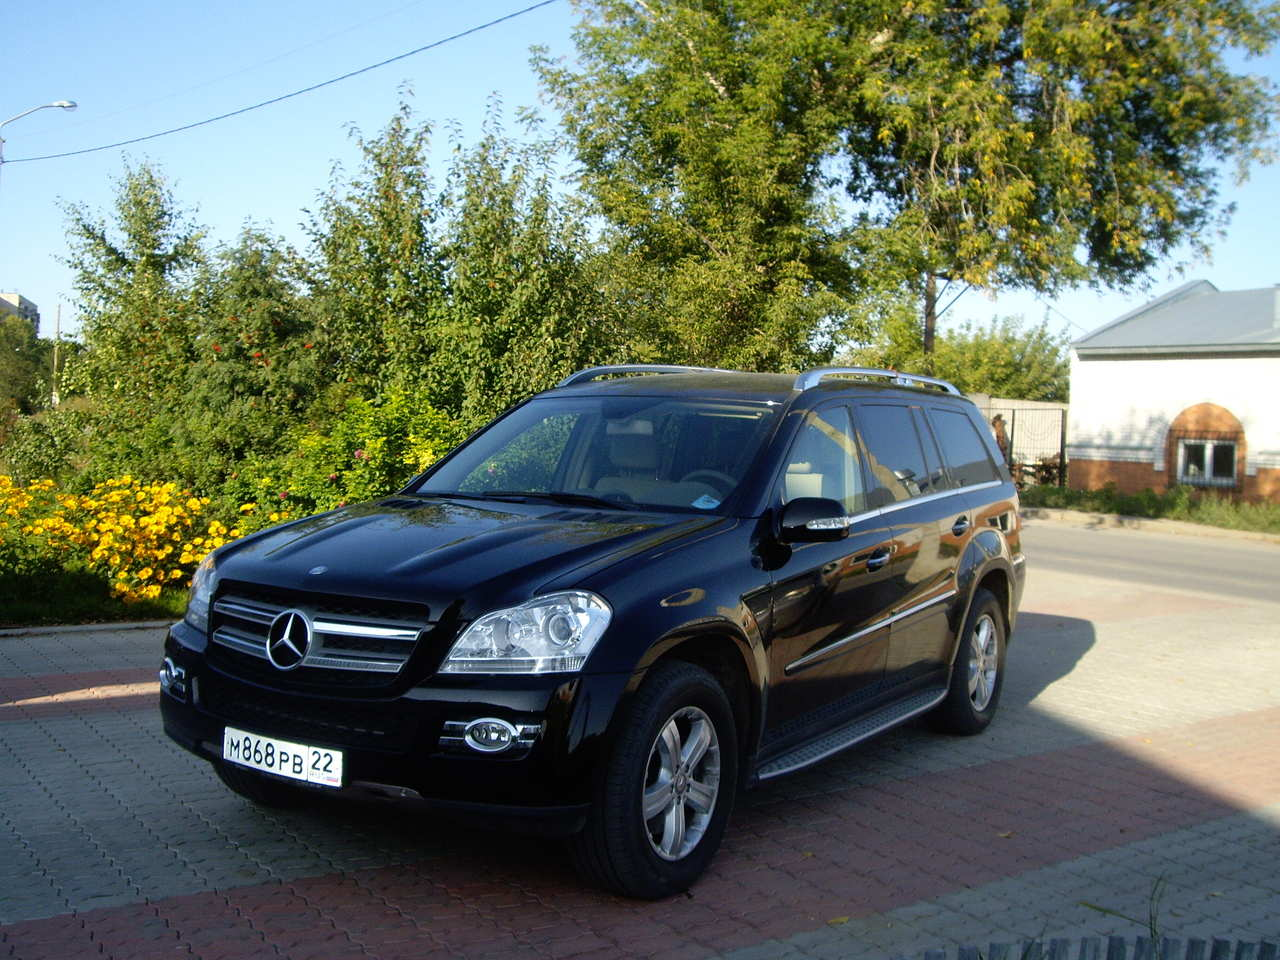 2008 mercedes benz gl class pictures 3000cc diesel for 2008 mercedes benz gl450 for sale